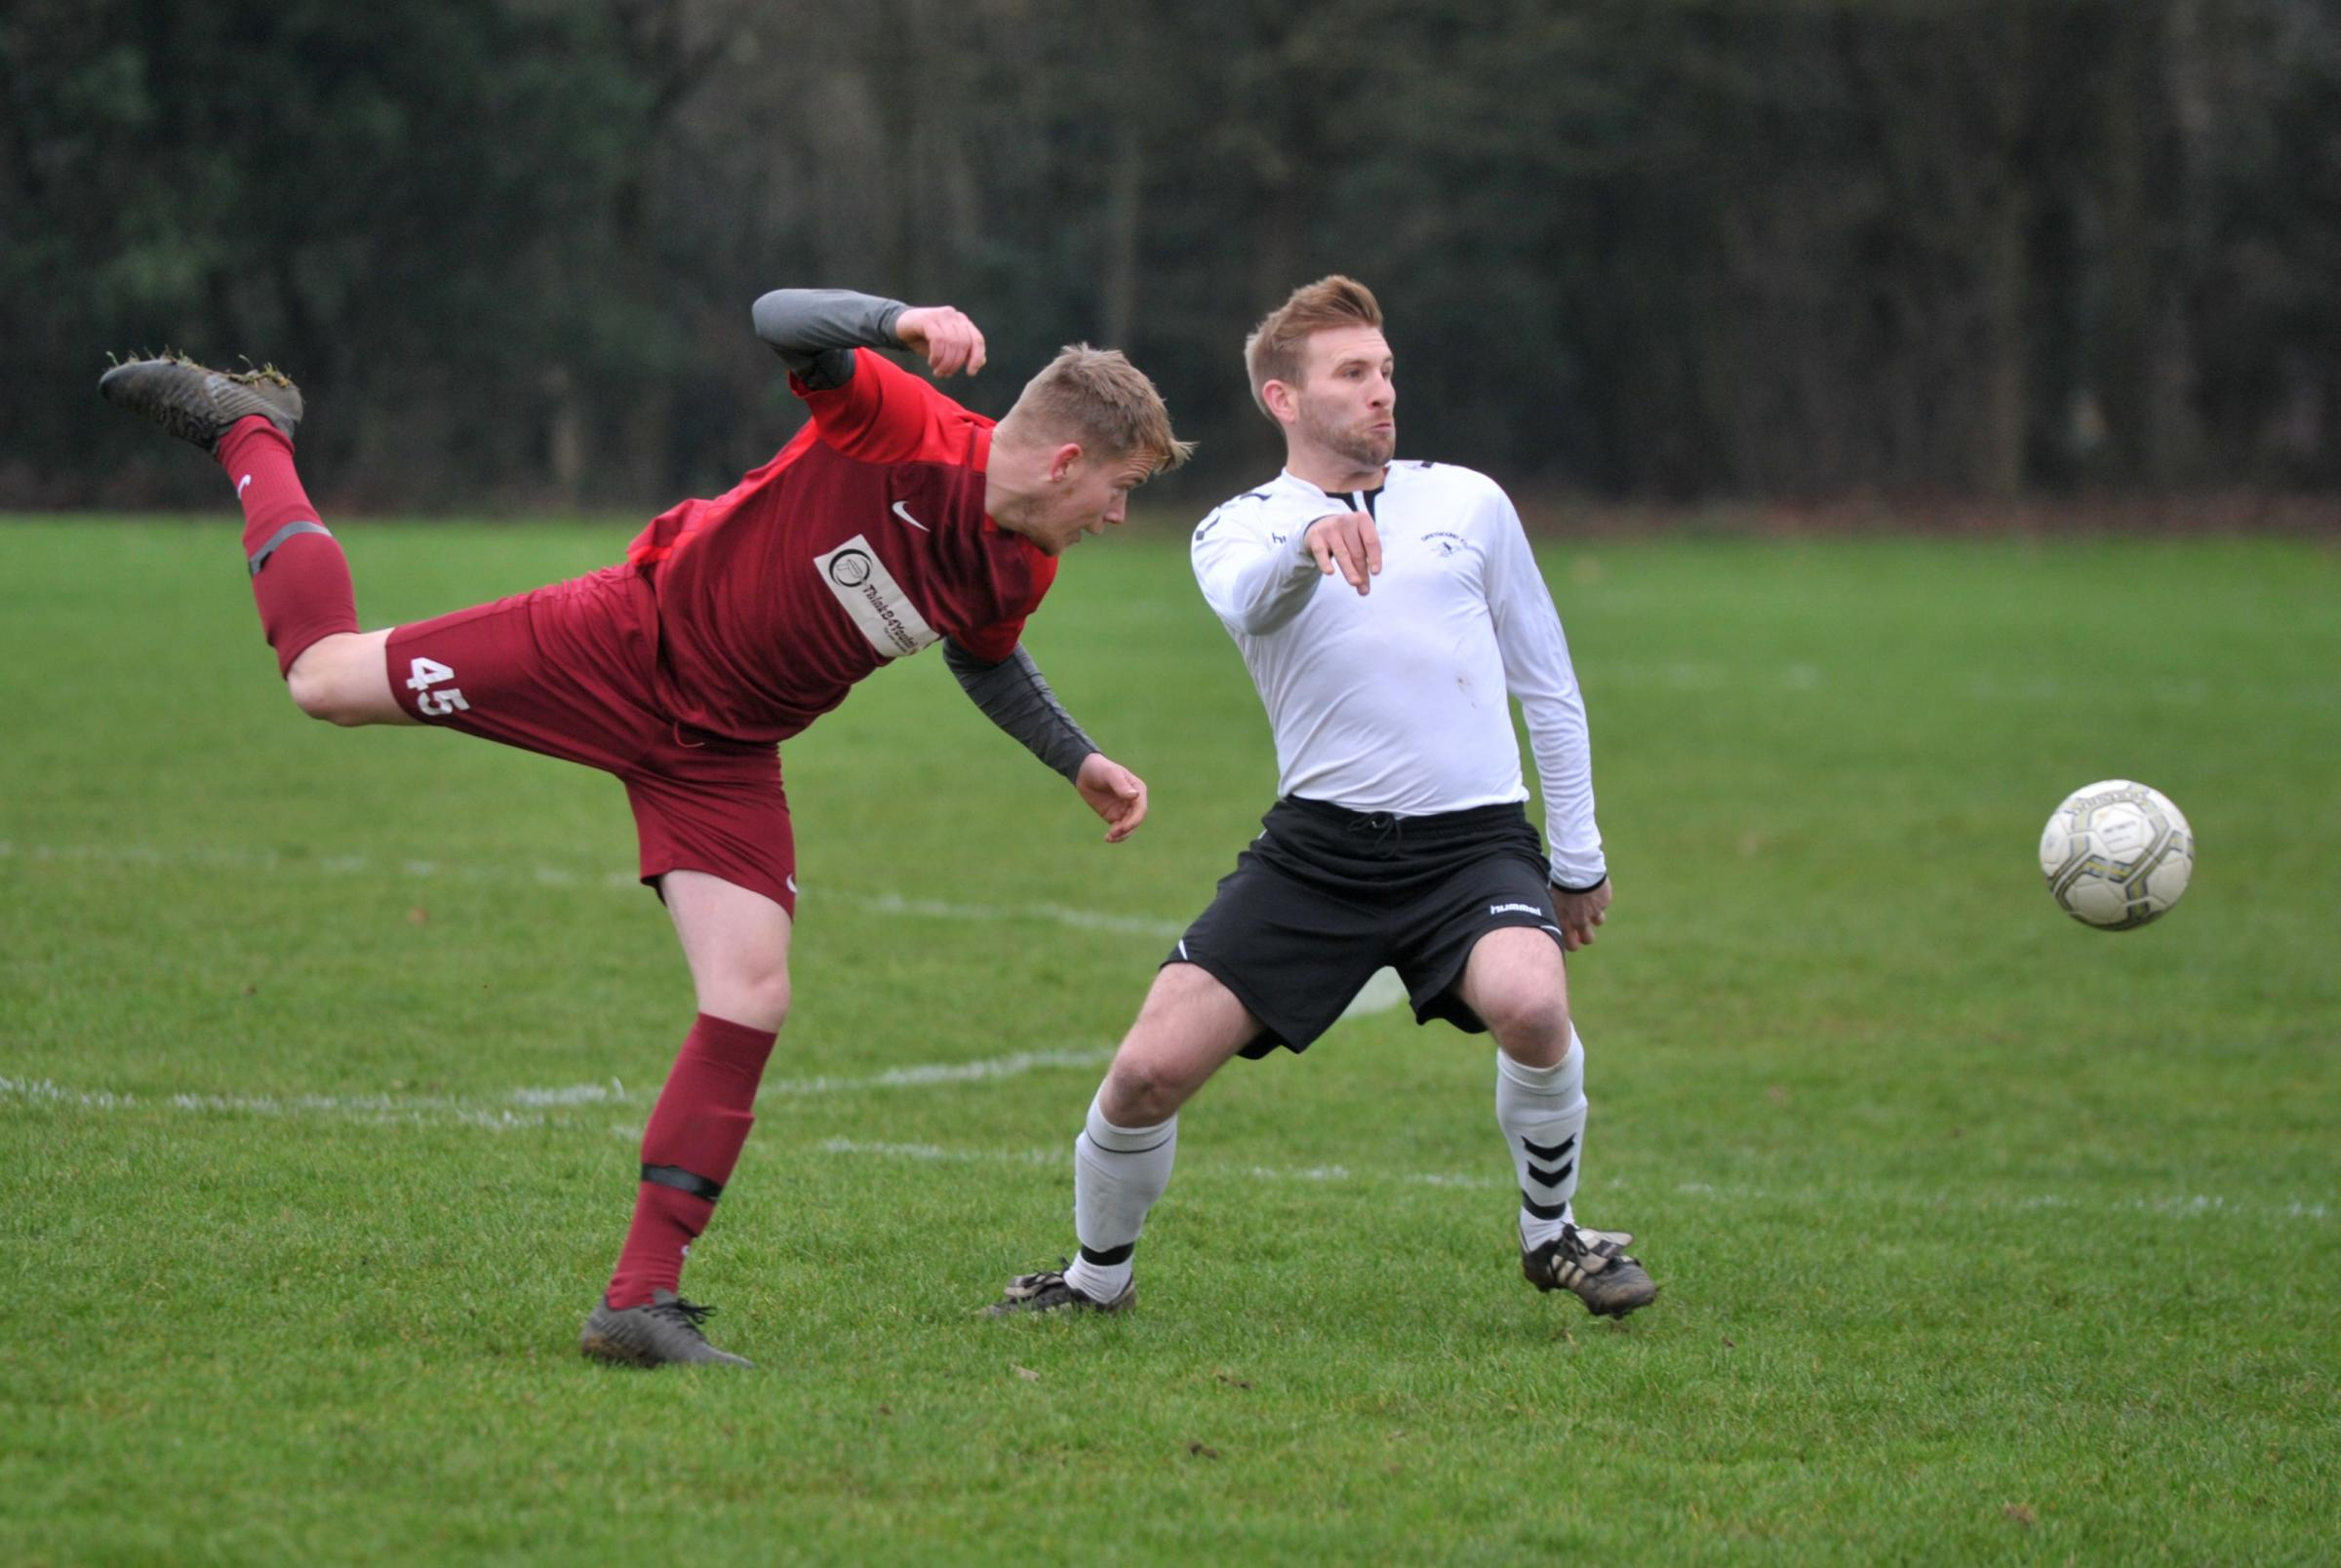 FC Walcot's Alex Hammond (red) and Greyhound player Glenn Armstrong in action during the two sides' 1-1 Premier Division draw in the Swindon Sunday League       Picture: DAVE COX